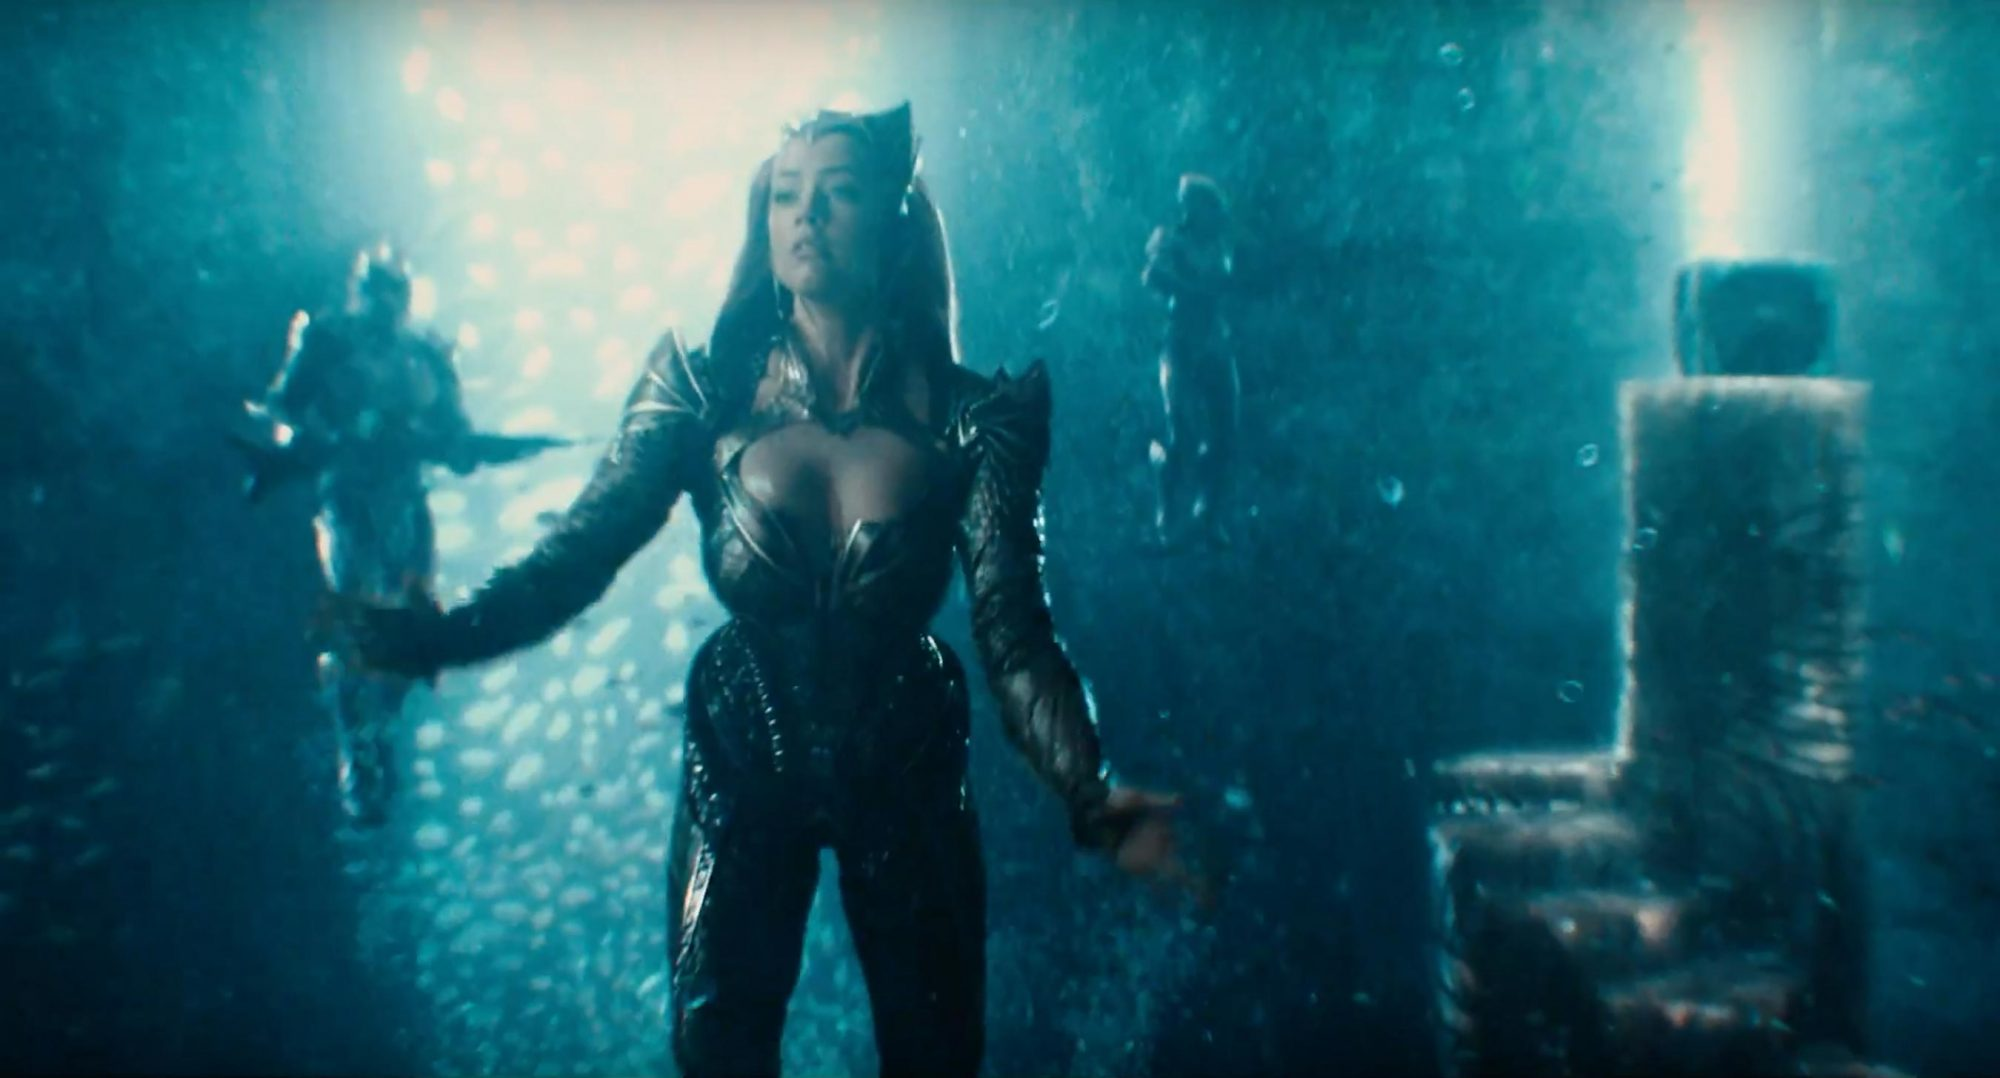 JUSTICE LEAGUE - Official Trailer 1 (screen grab) CR: Warner Bros. Pictures